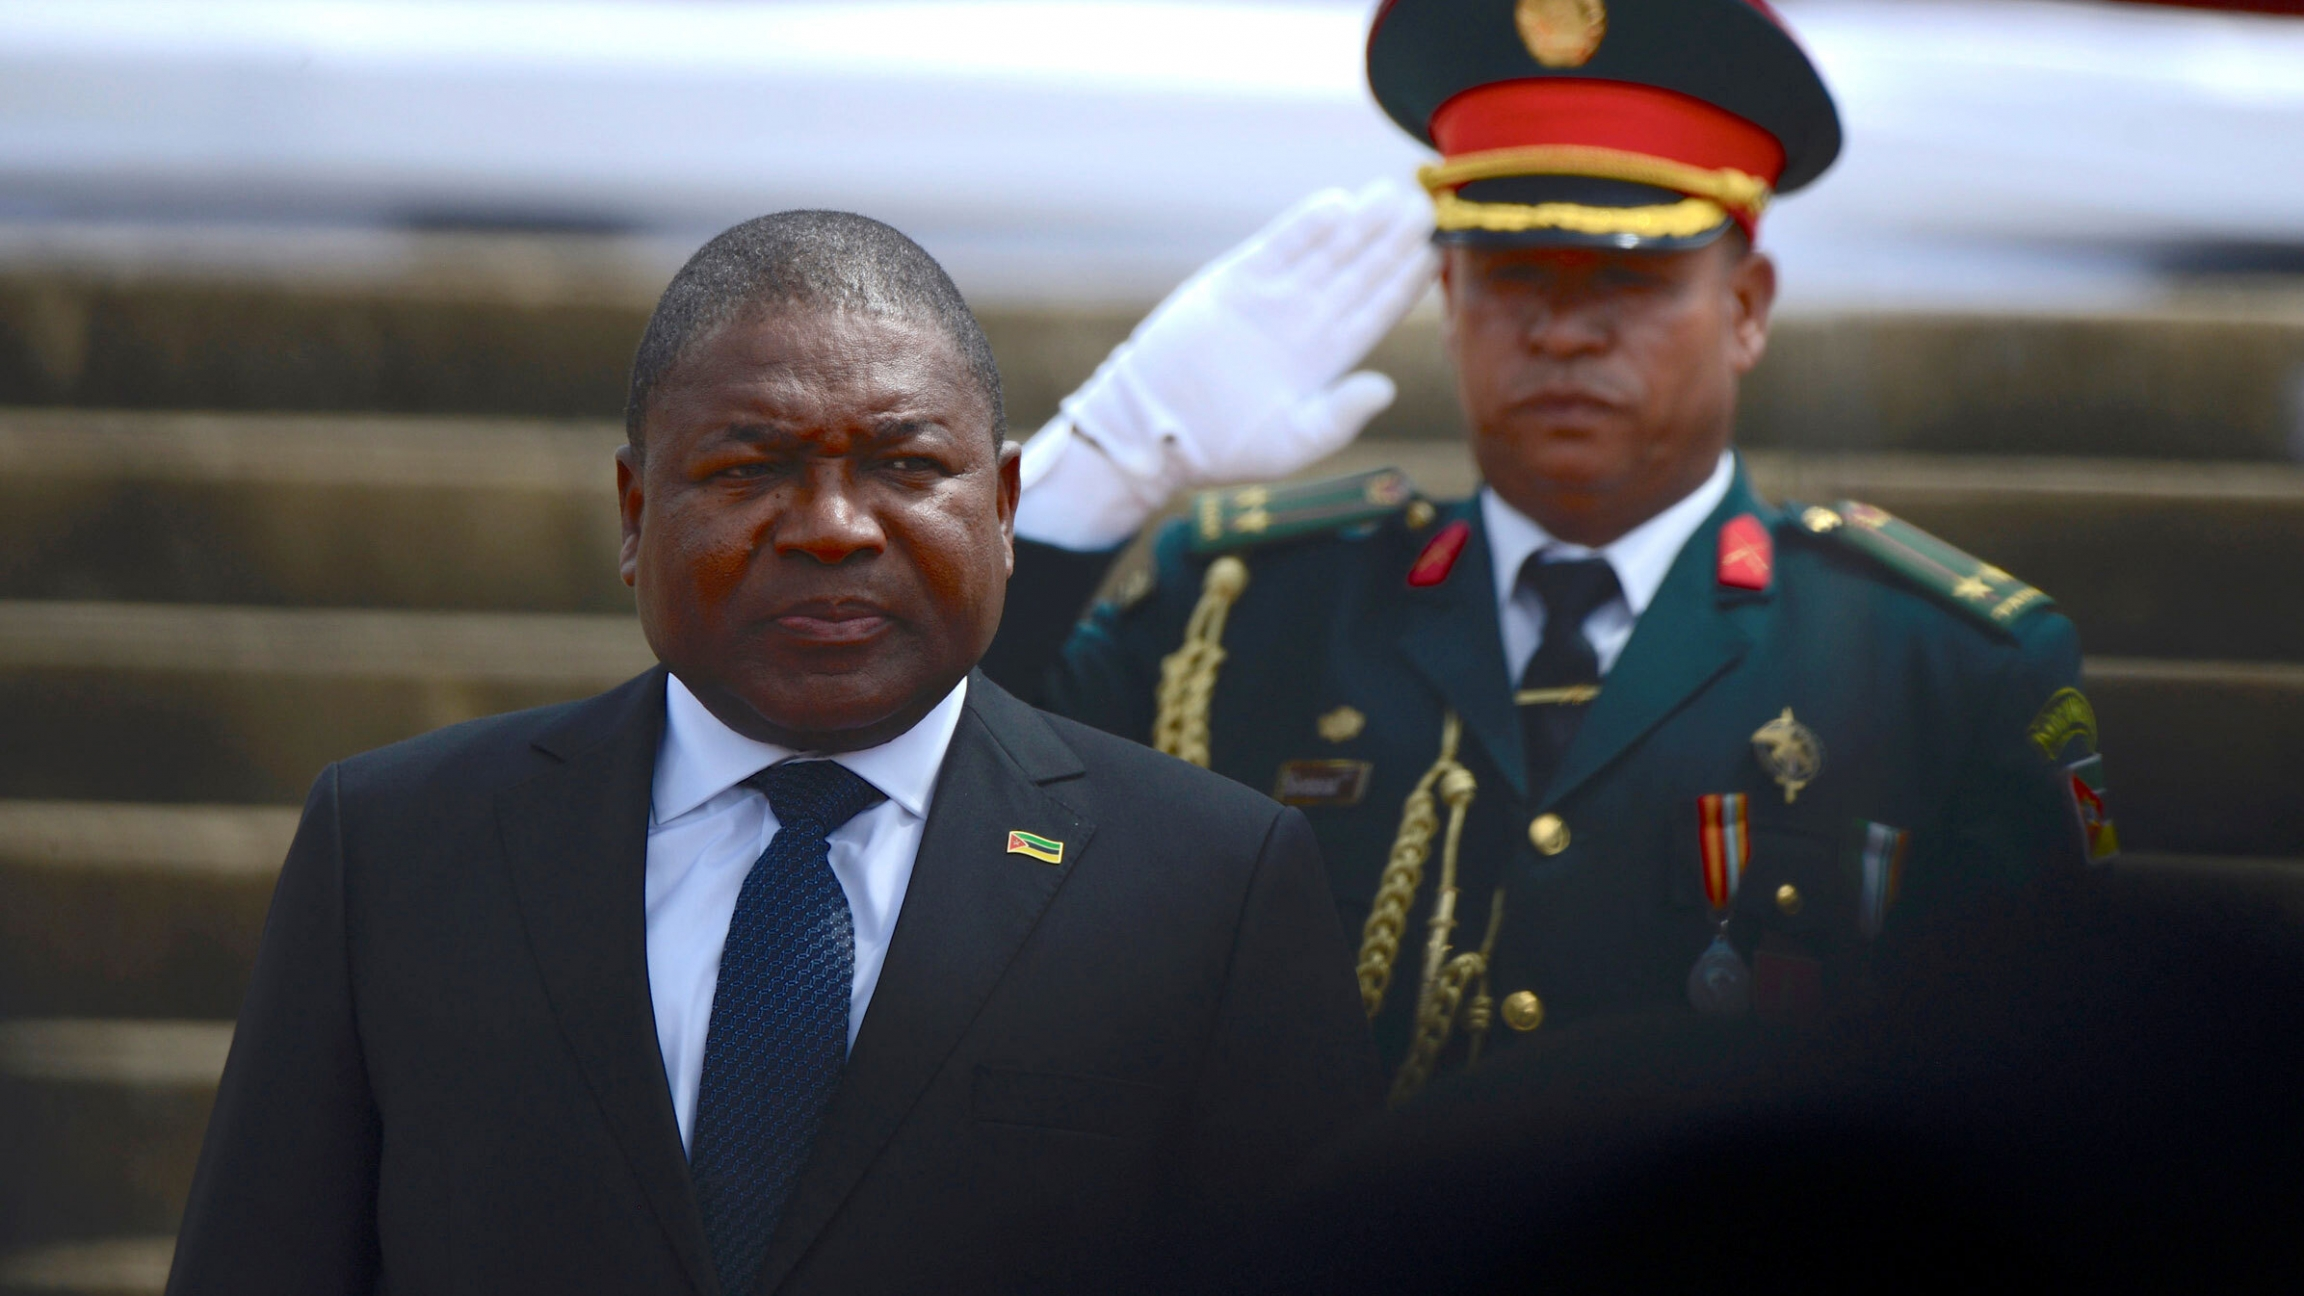 President of Mozambique Filipe Nyusi wears a suit behind a military officer in uniform.